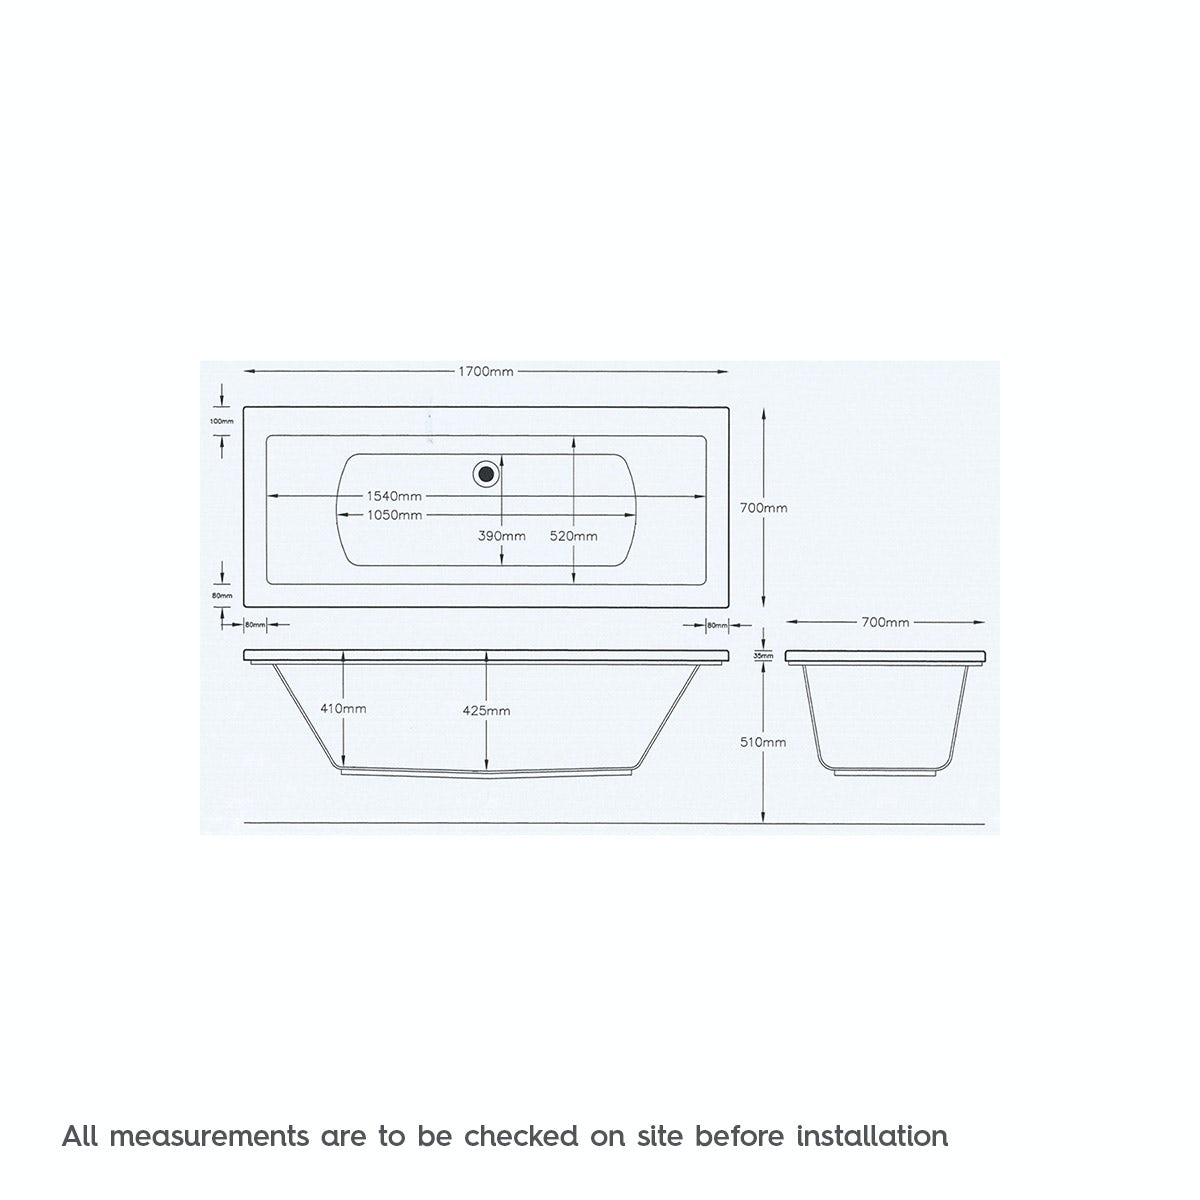 Dimensions for Kirke square edge double ended reinforced bath 1700 x 700